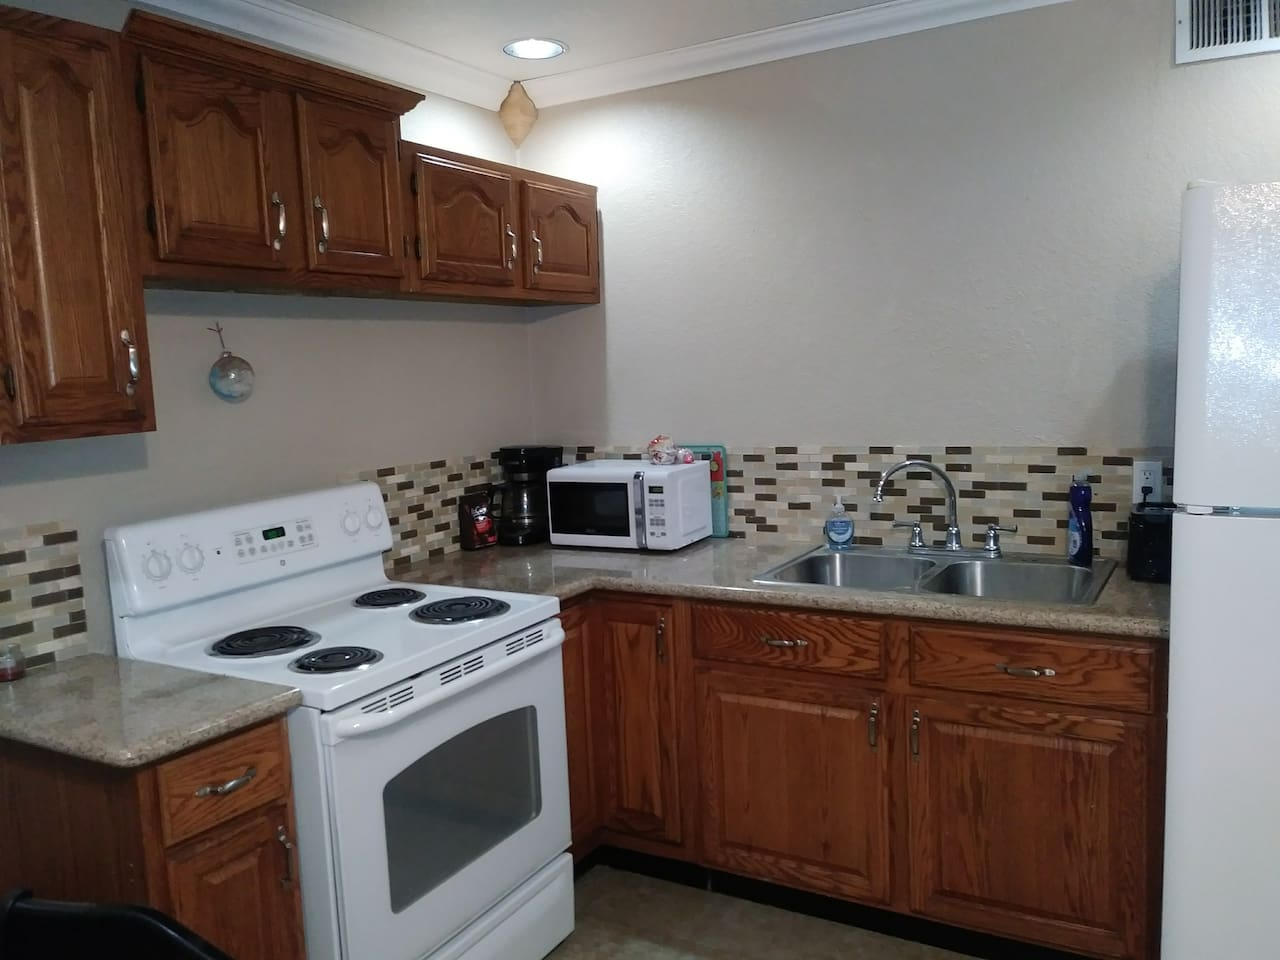 Full kitchen with full size stove oven and fridge & freezer